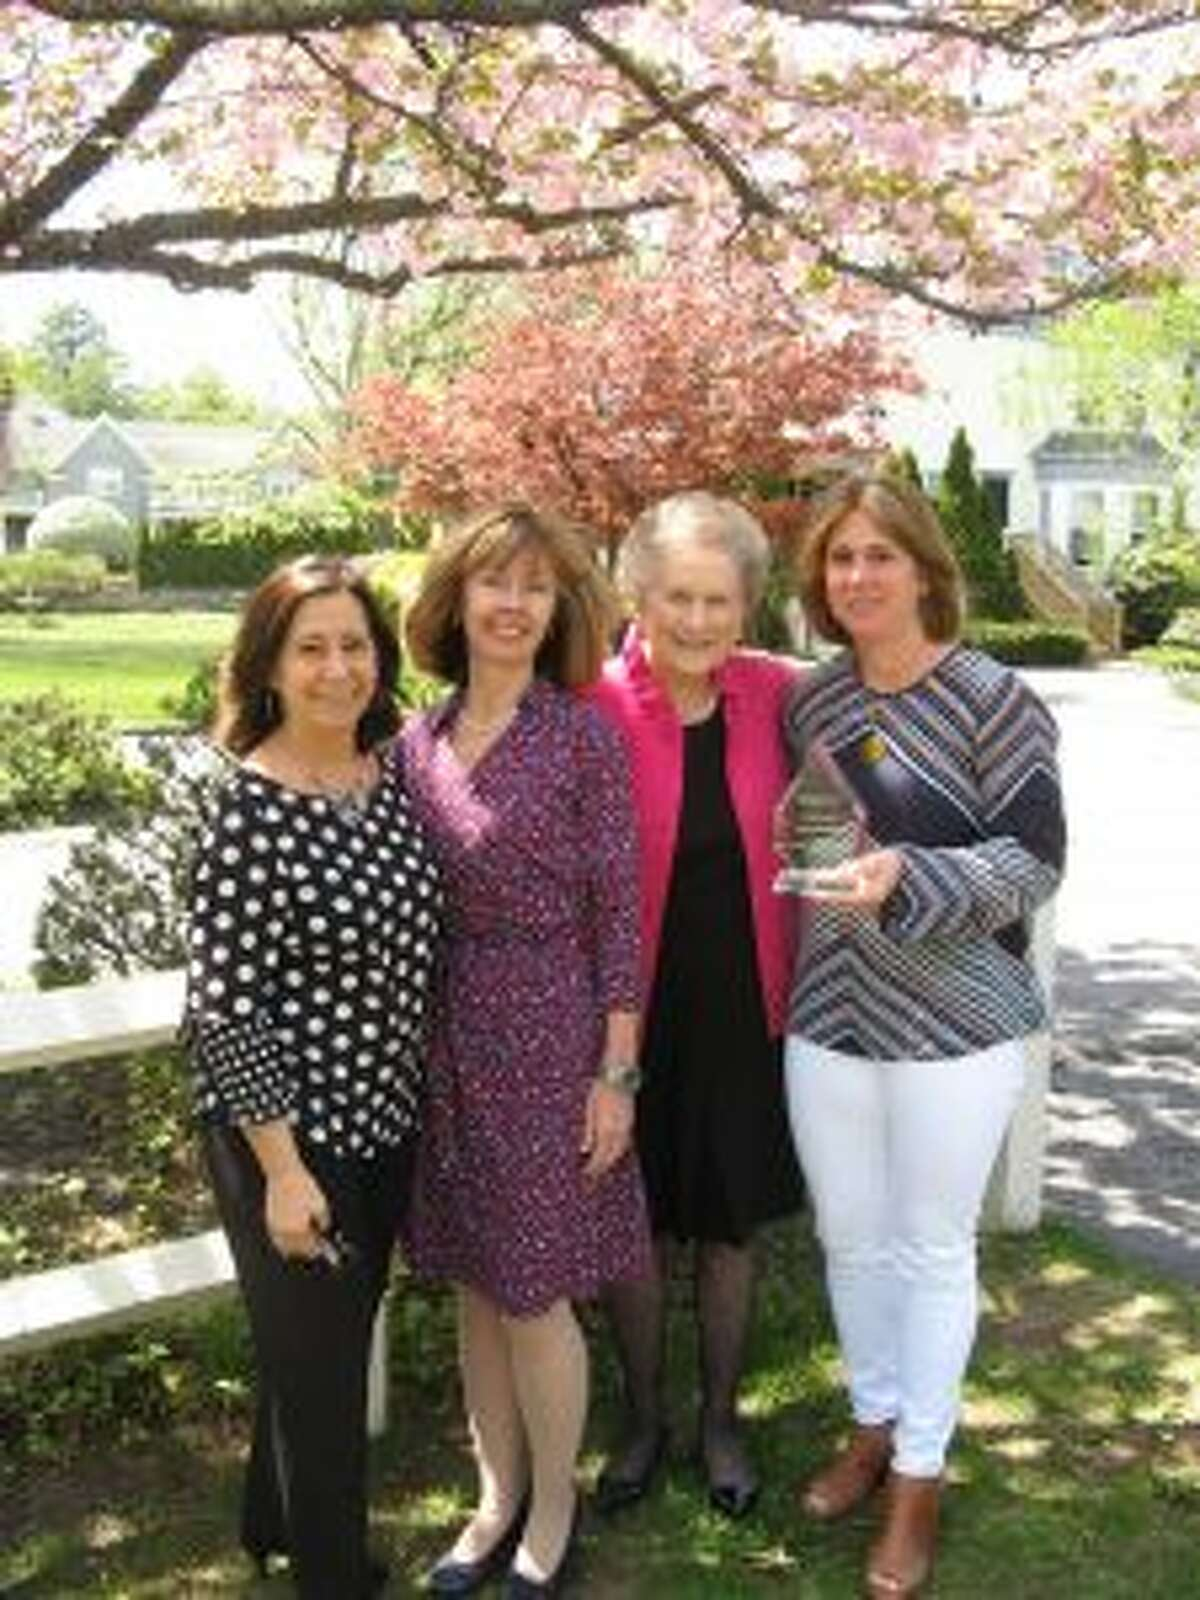 New Canaan: Thrift Shop, and Hospice volunteers of New Canaan recently received Visiting Nurse Awards. Thrift Shop, and Hospice volunteers of New Canaan recently received Visiting Nurse Awards. New Canaan resident, Nancy Schullman, far right, received the agency's highest volunteer honor, The Carol B. Bauer Community Spirit Award, for her outstanding service as a Hospice volunteer. She is pictured here, from left, with Volunteer Coordinator, Laurie Petrasanta, agency CEO, Sharon Bradley, and Carol Bauer, for whom the award was named.- Contributed photo